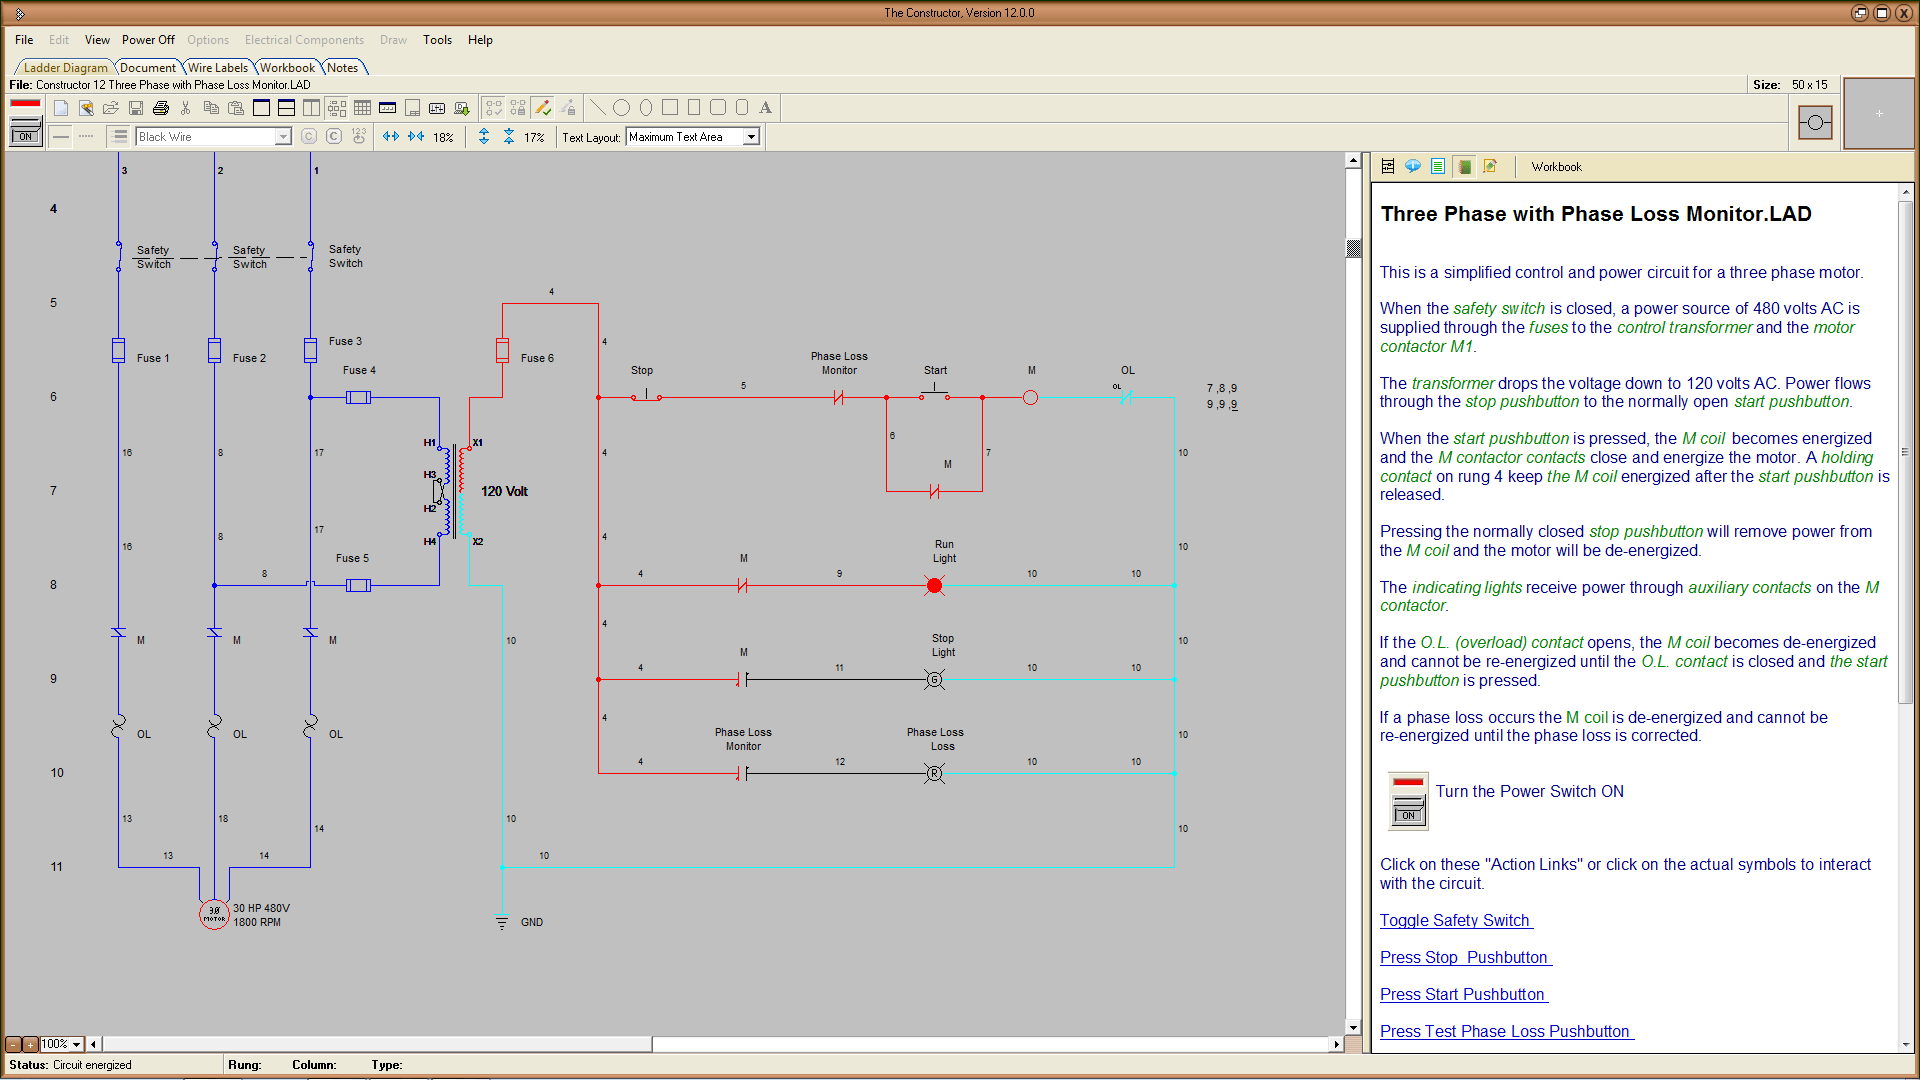 Wiring Diagram Simulator Software Free Download Wiring Diagram